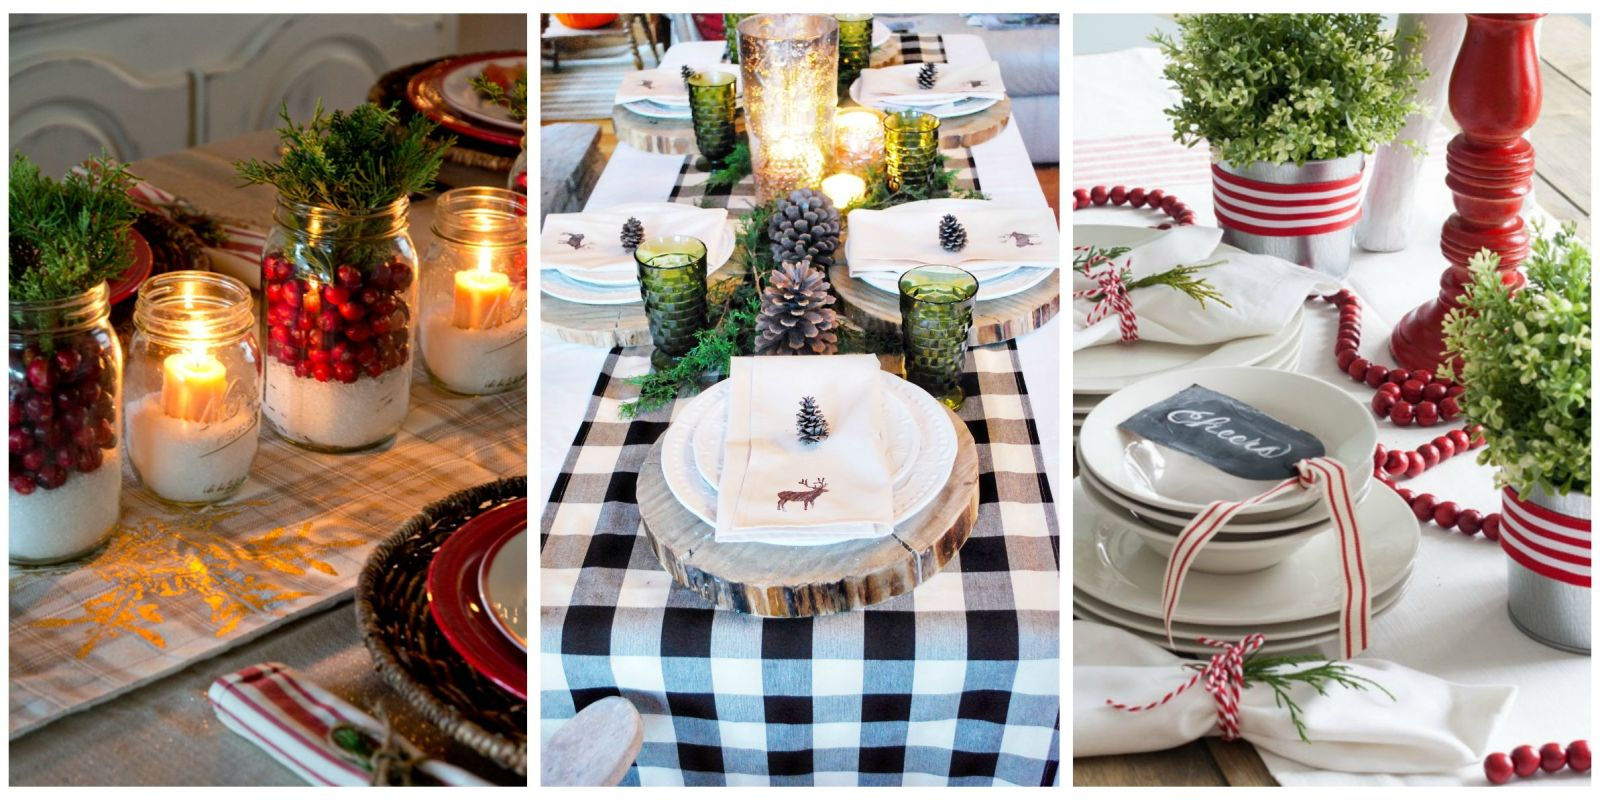 Decorating Ideas Christmas 32 christmas table decorations & centerpieces - ideas for holiday